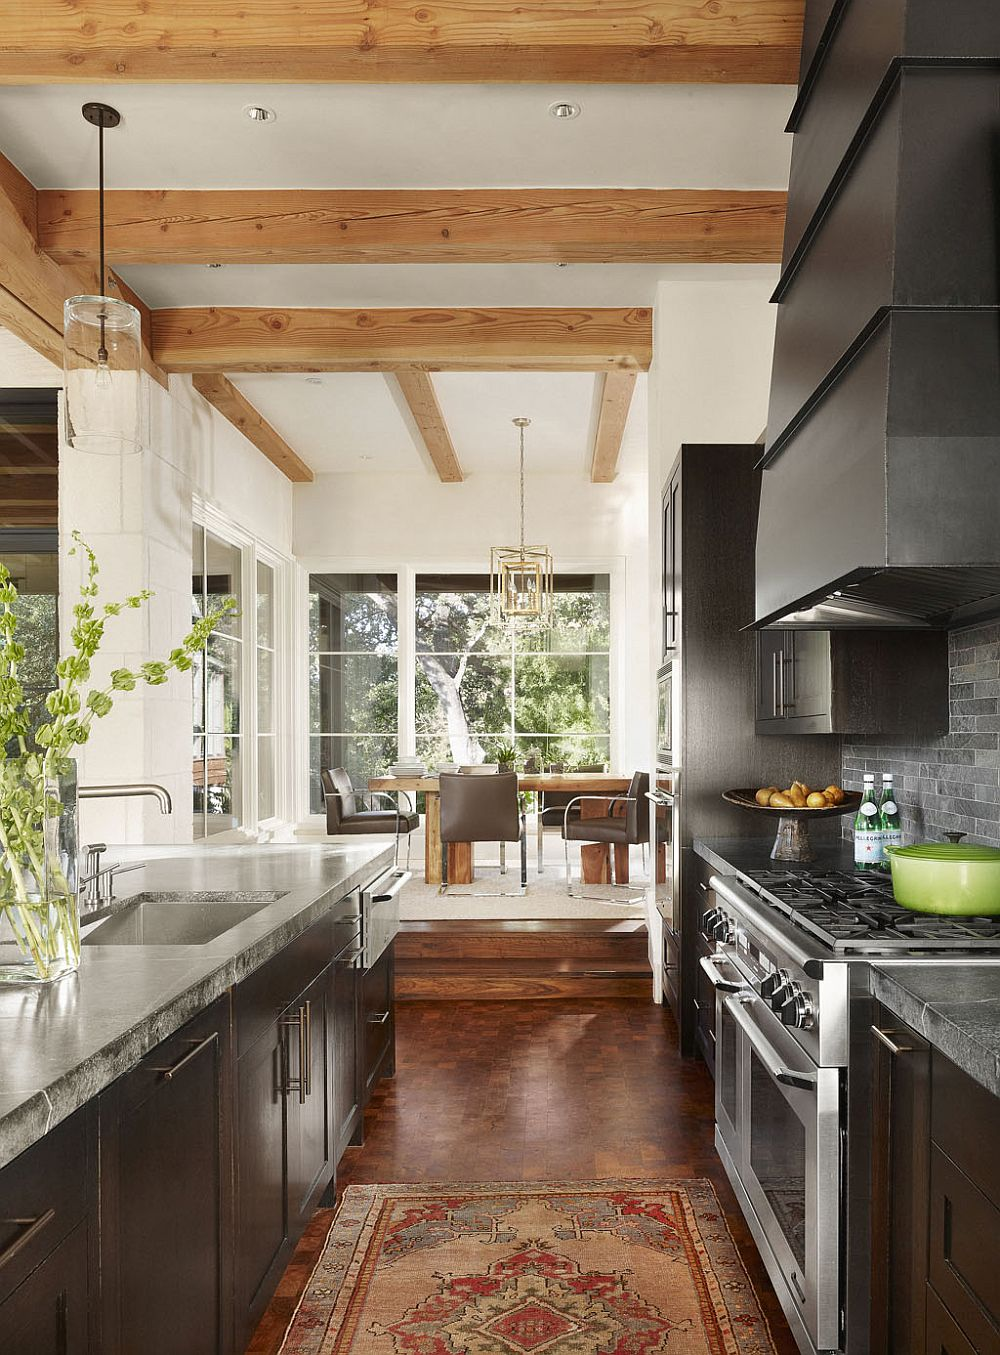 Kitchen-and-dining-area-of-the-Lake-Austin-House-with-an-open-design-and-exposed-ceiling-wood-beams-90820